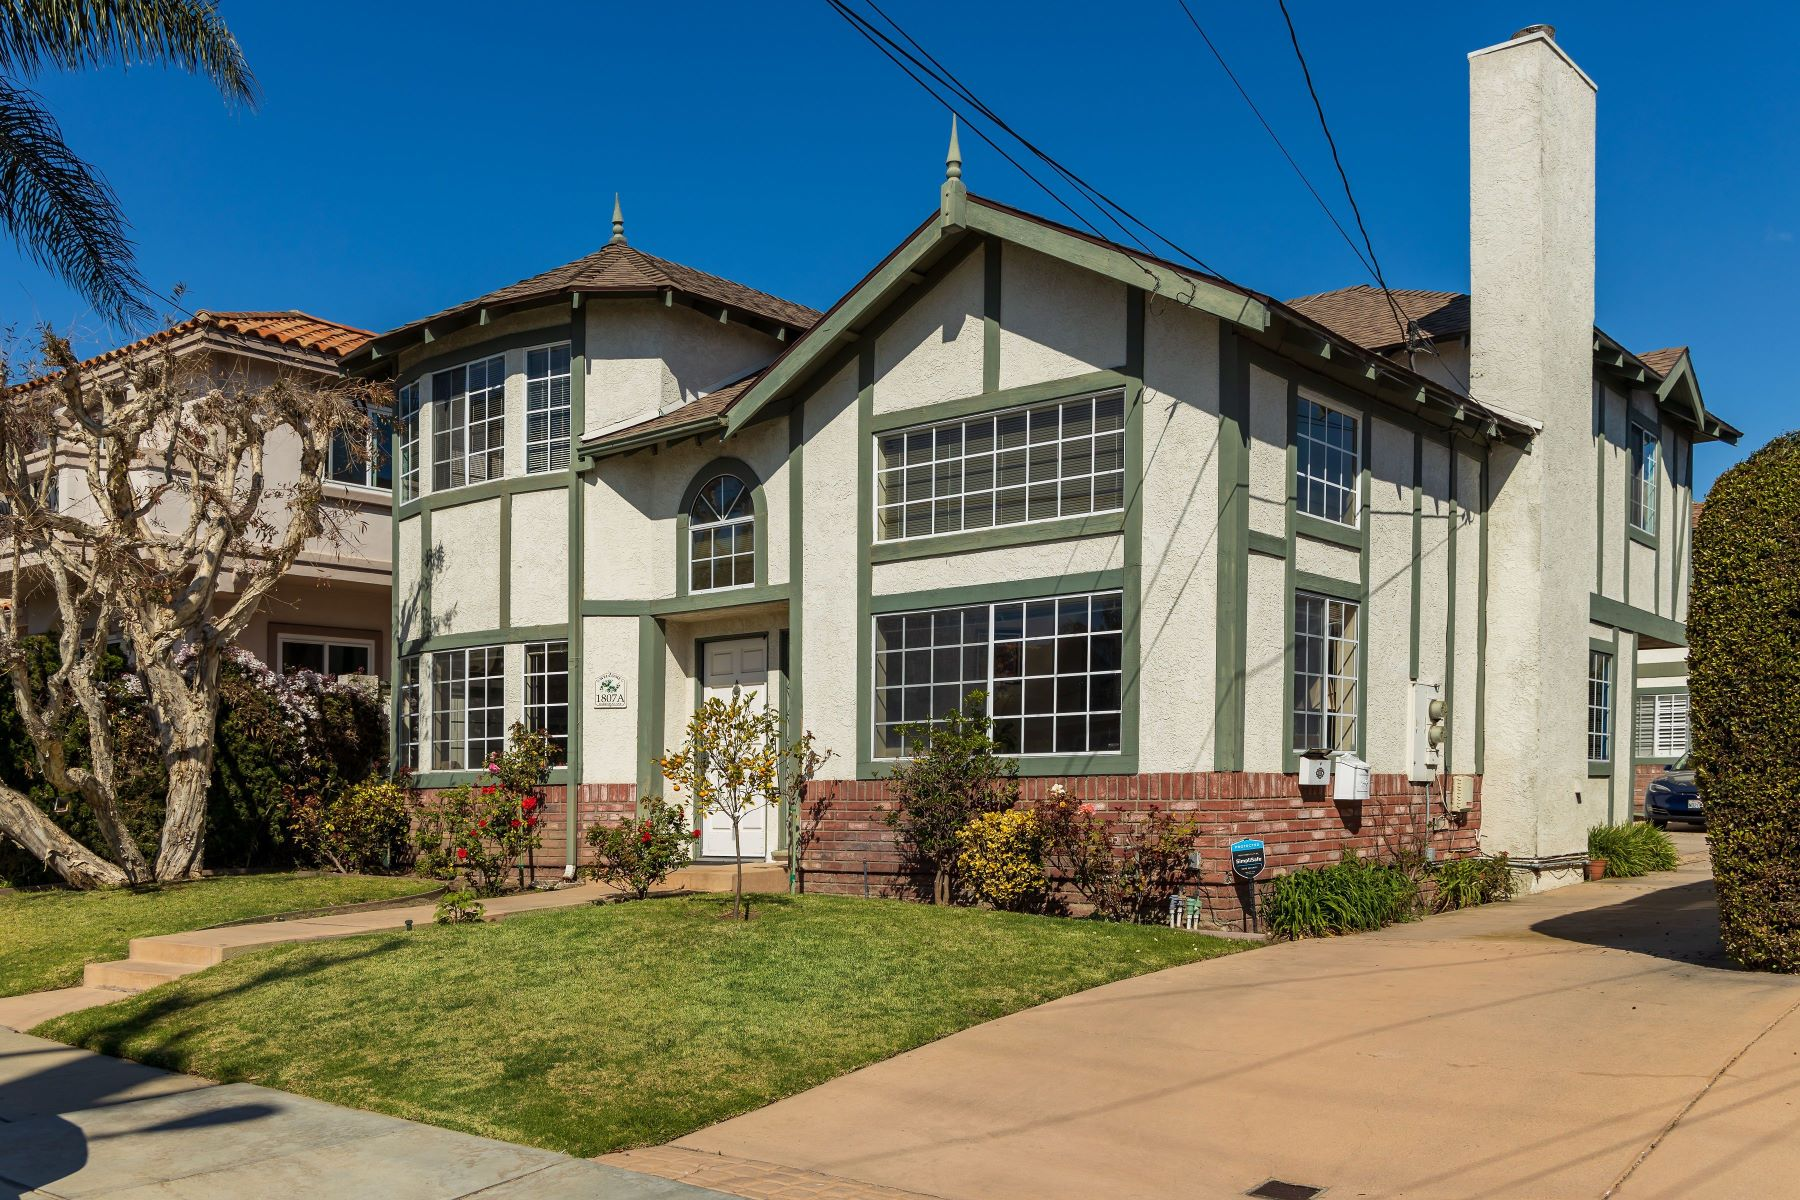 townhouses for Active at 1807 Harriman Lane #A, Redondo Beach, CA 90278 1807 Harriman Lane #A Redondo Beach, California 90278 United States